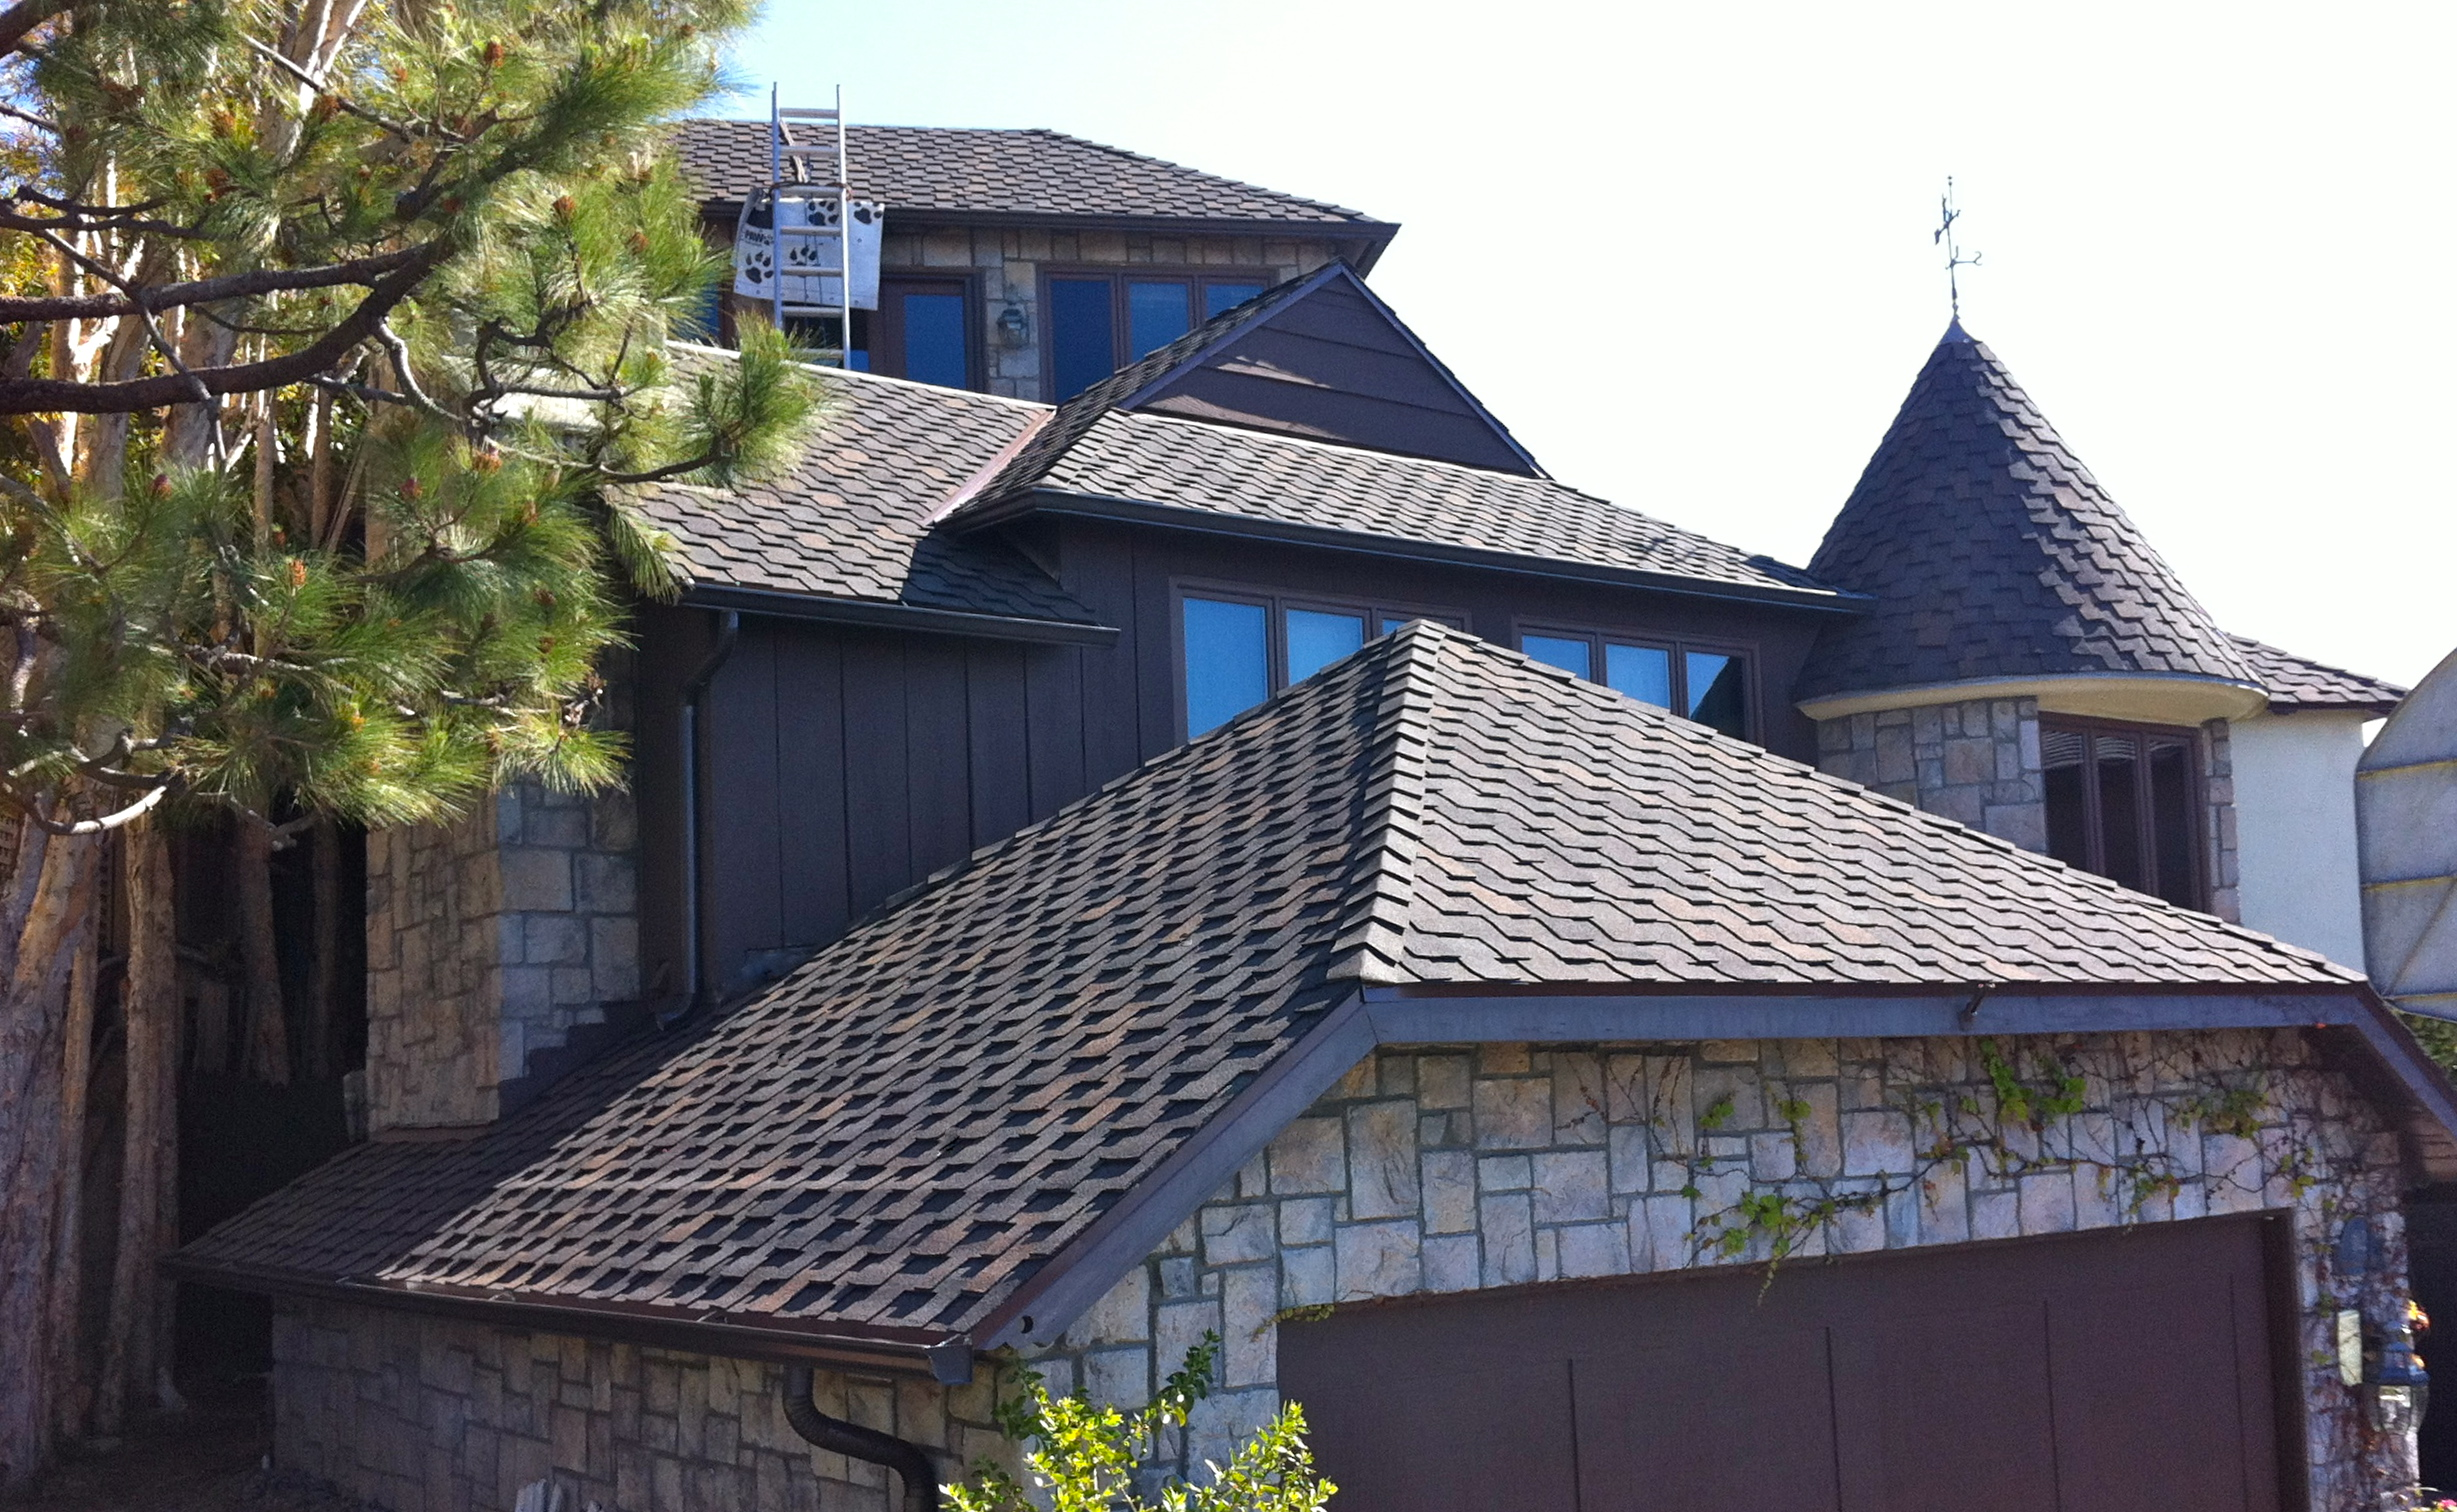 Los Angeles And Orange County Roofing Leader Achieves